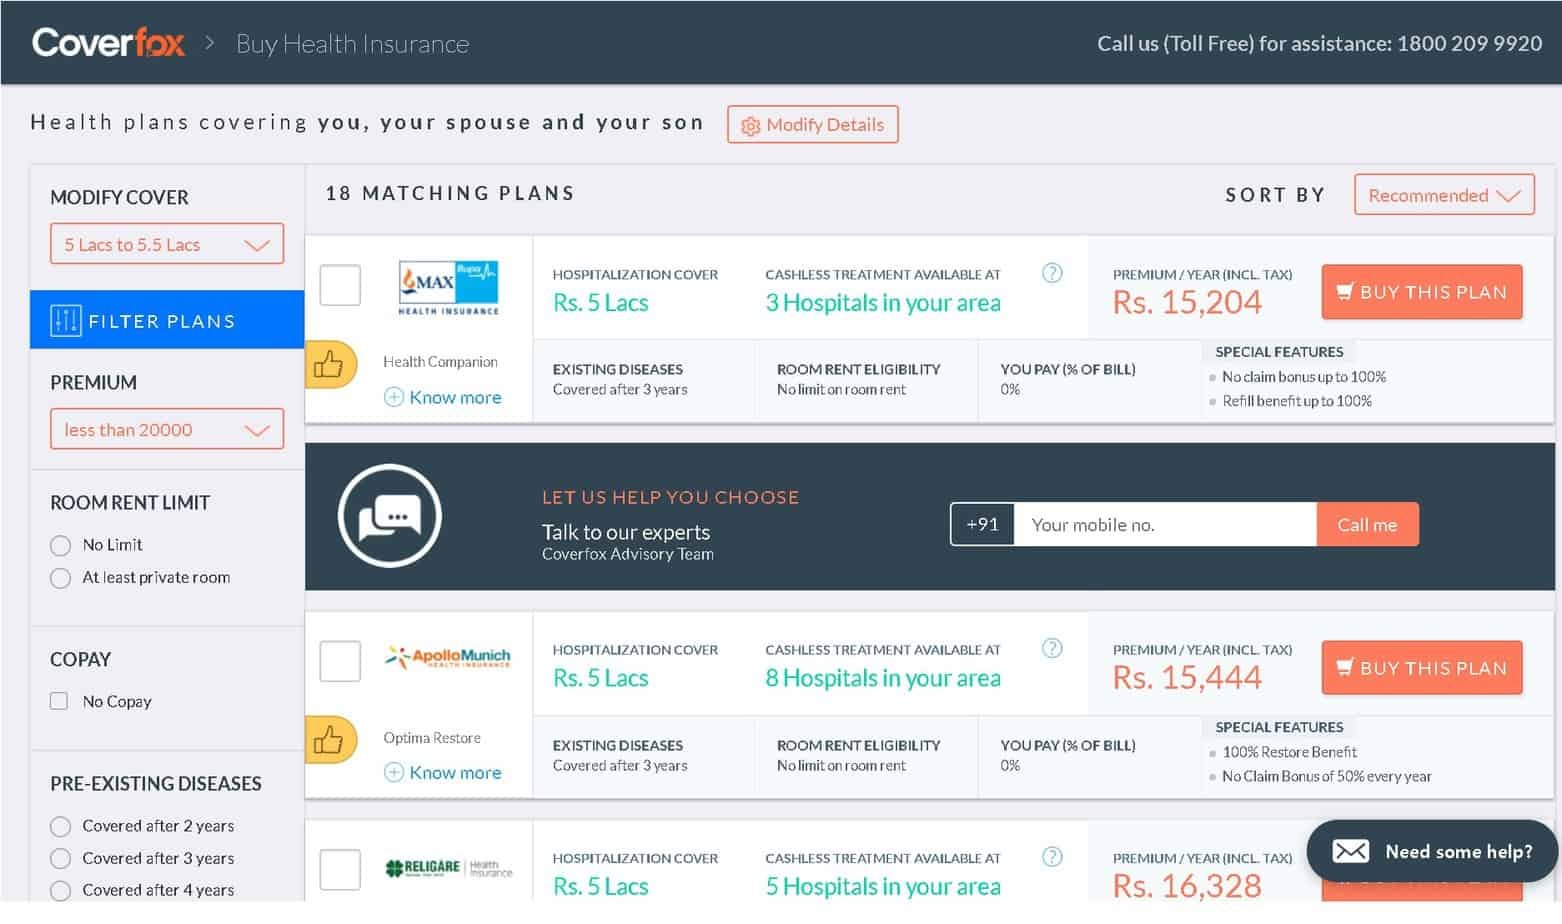 coverfox 3 - How I selected a health insurance policy